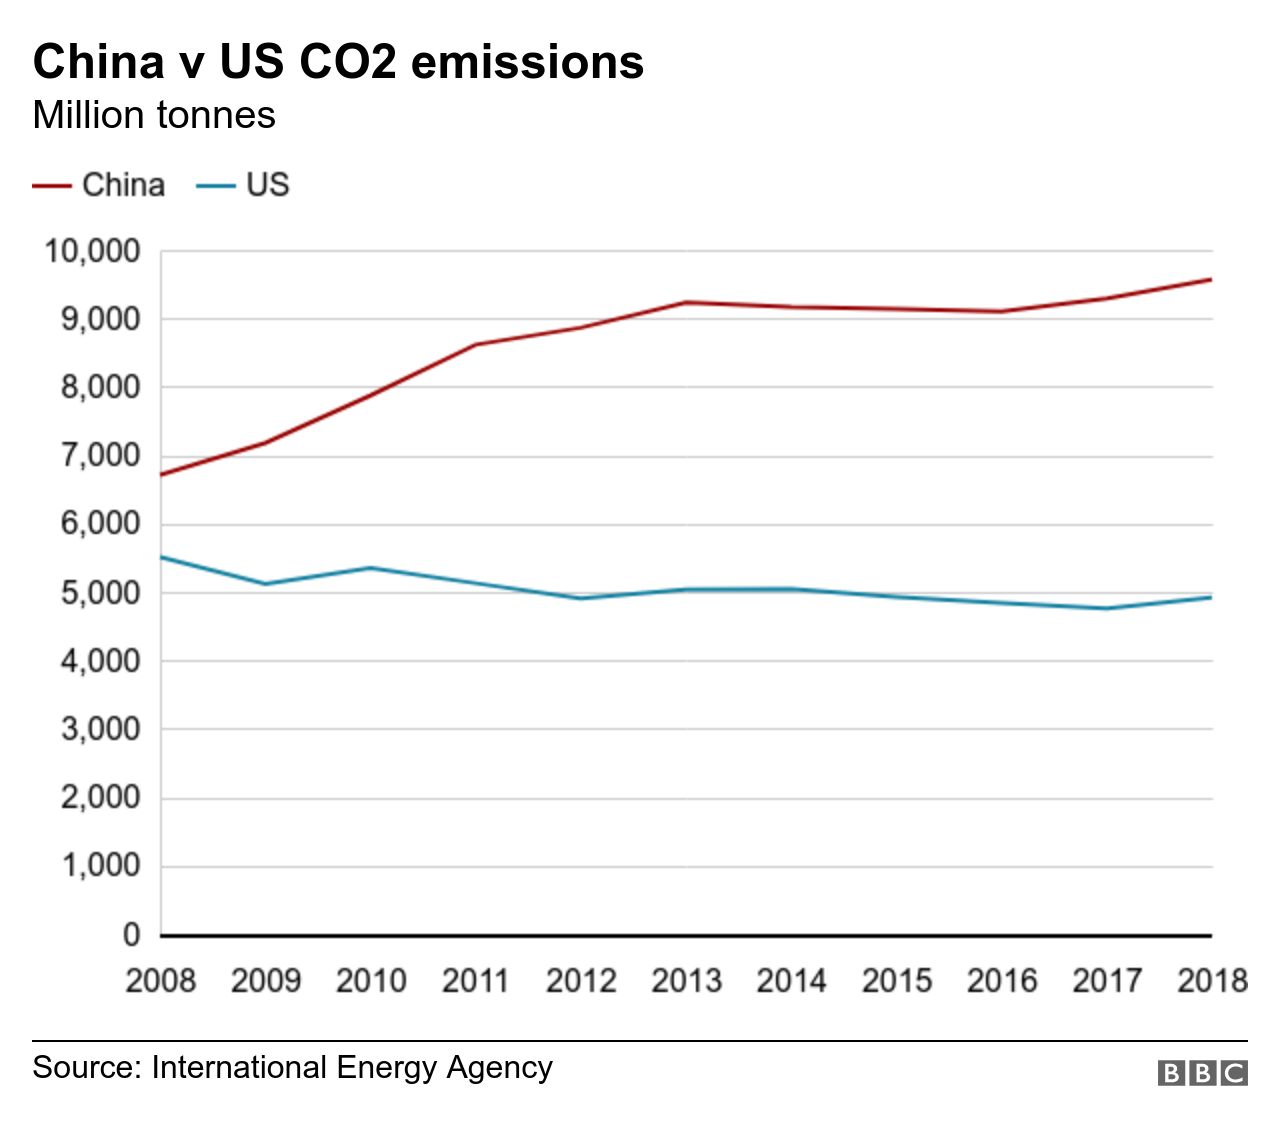 Annual CO2 emissions by China and the US